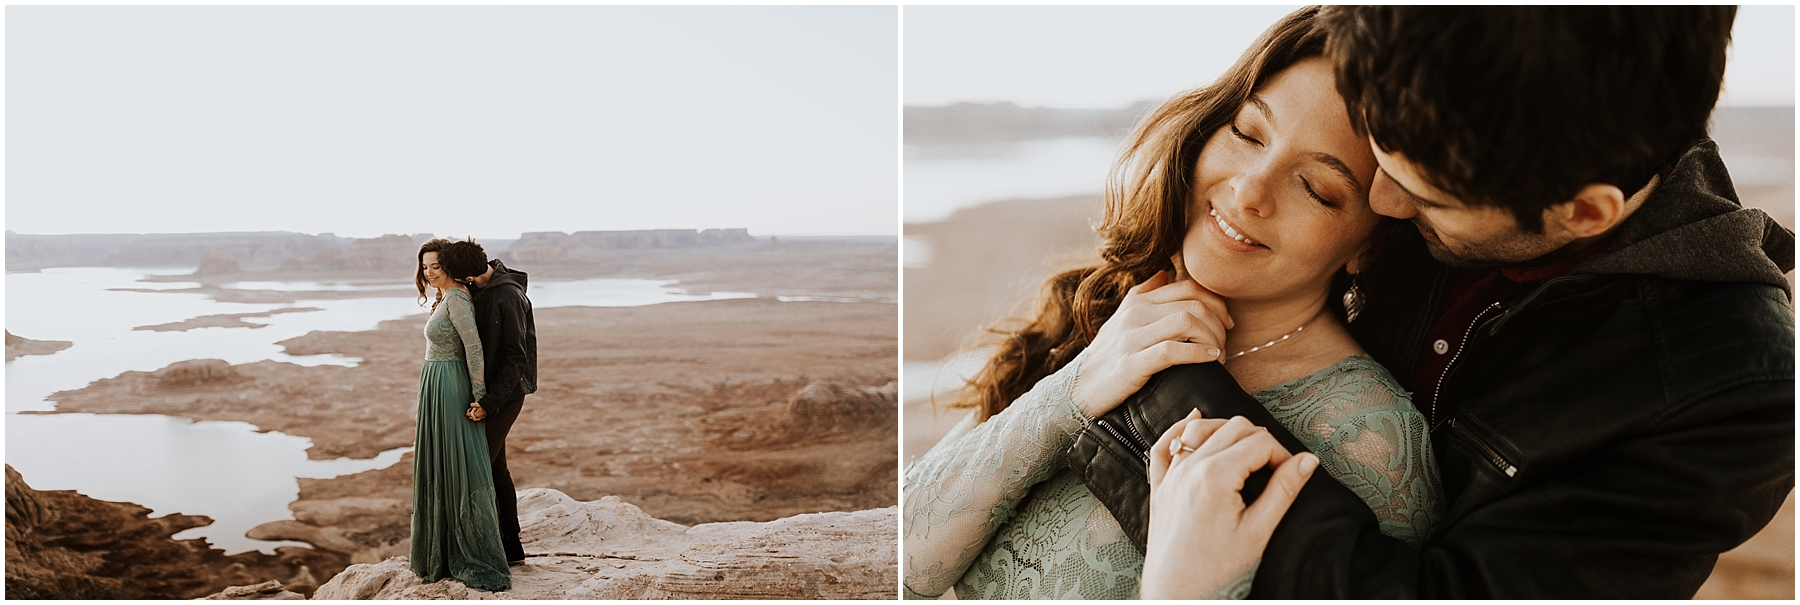 lake_powell_engagements_0013.jpg